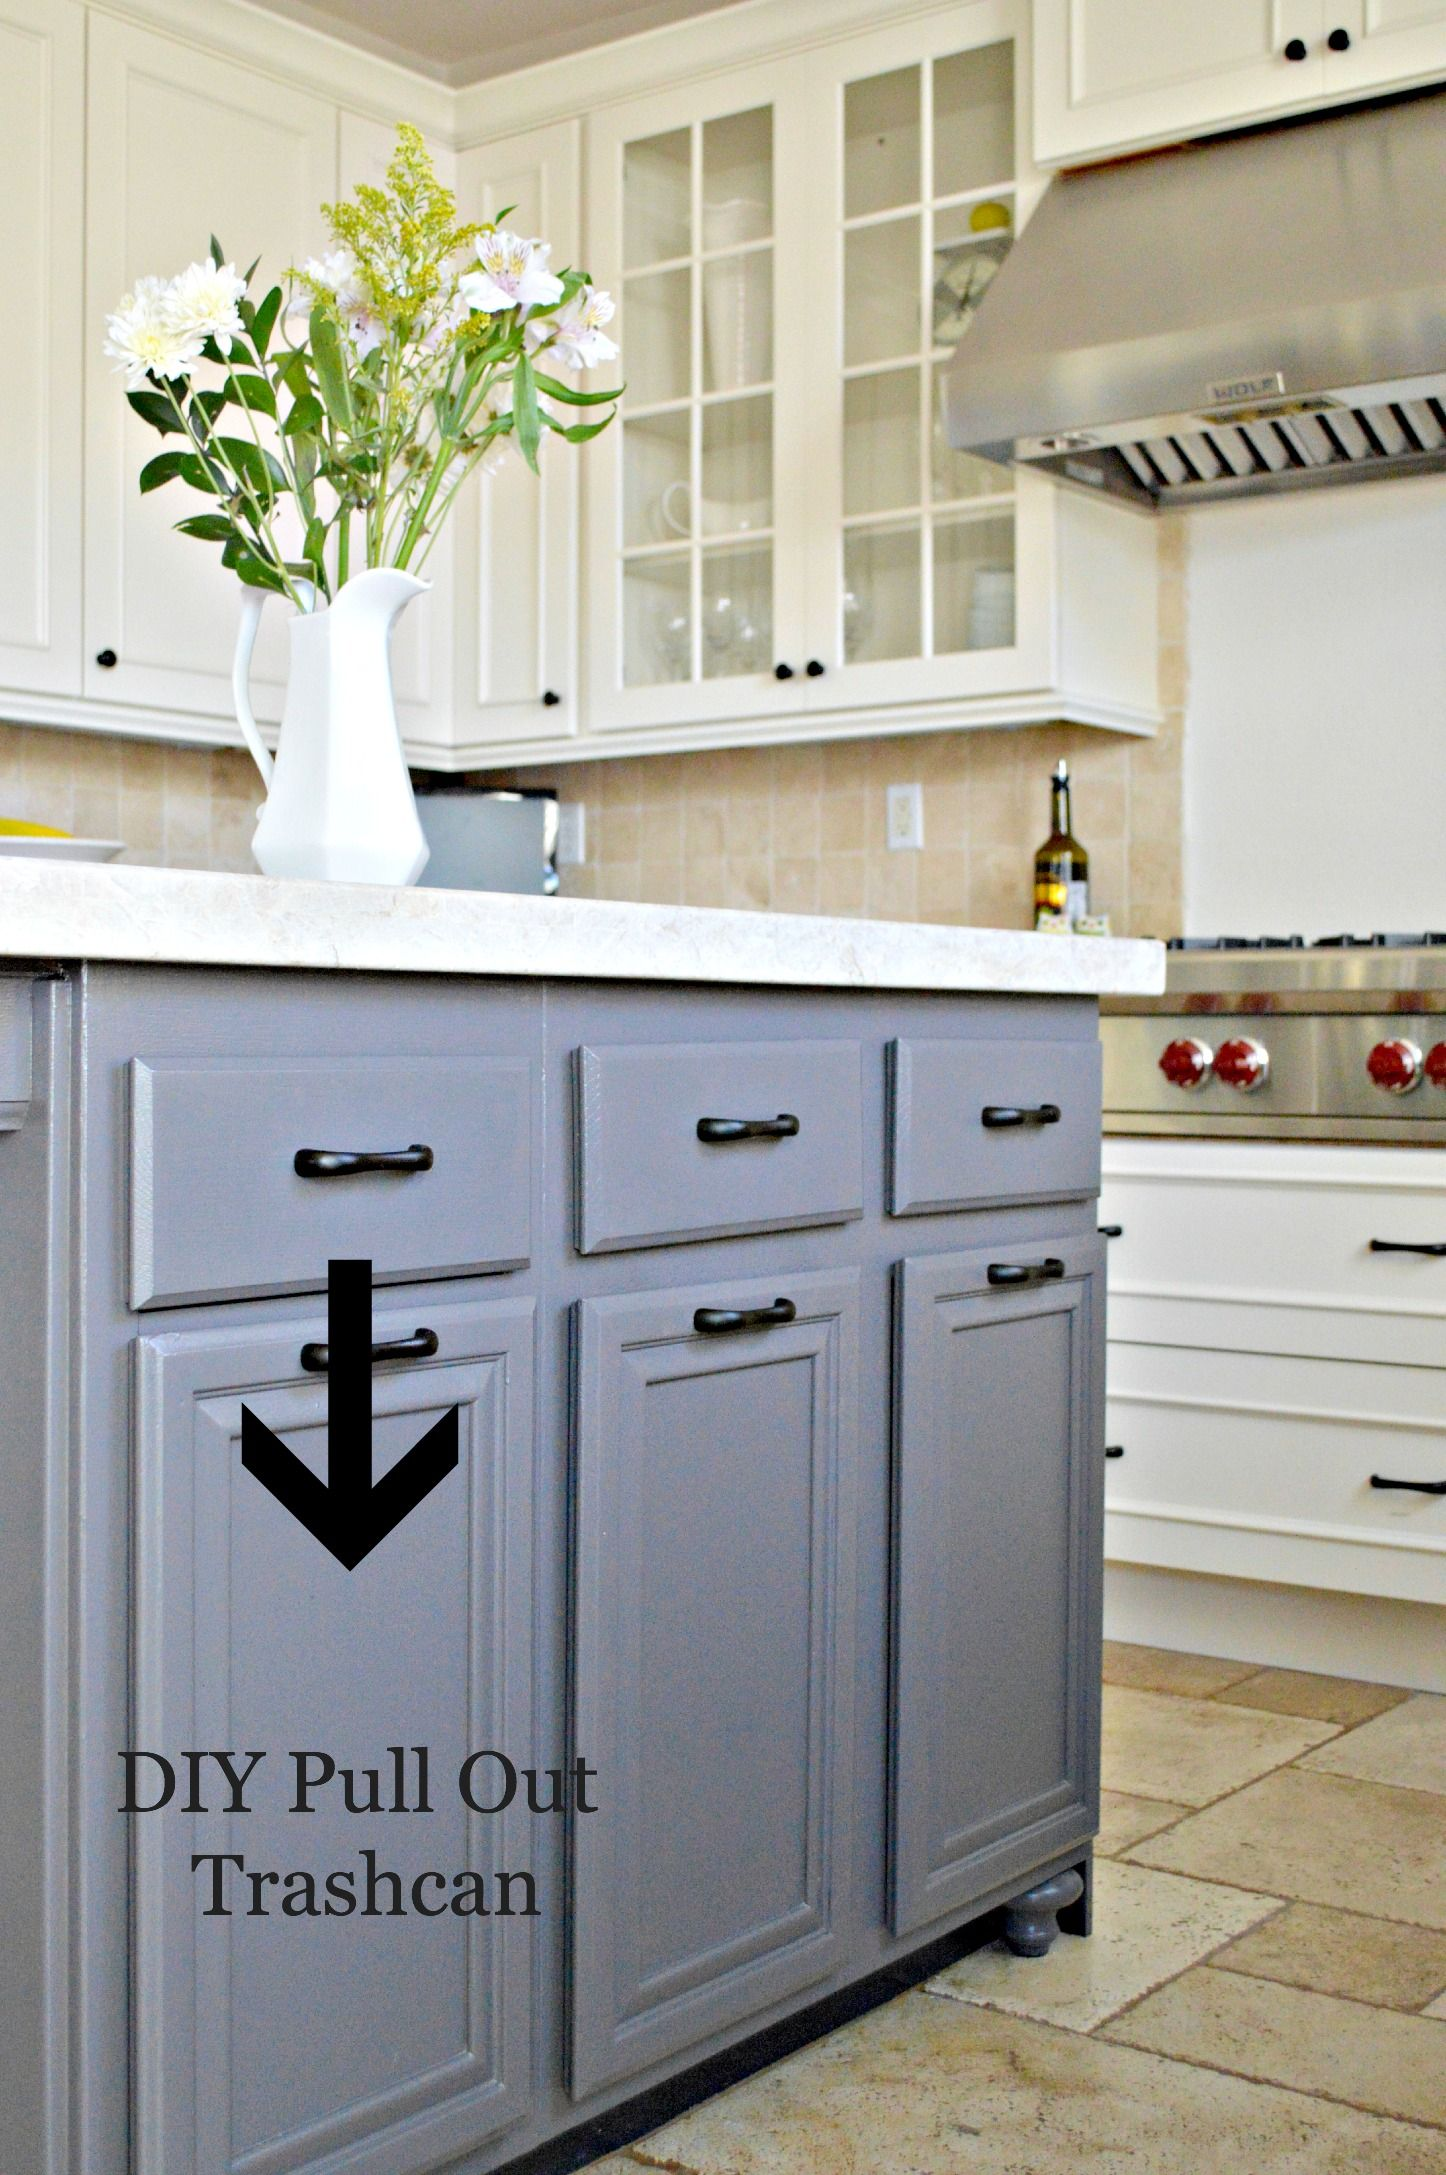 Turn a door and a drawer into a pull out trash can | Küchen ideen ...